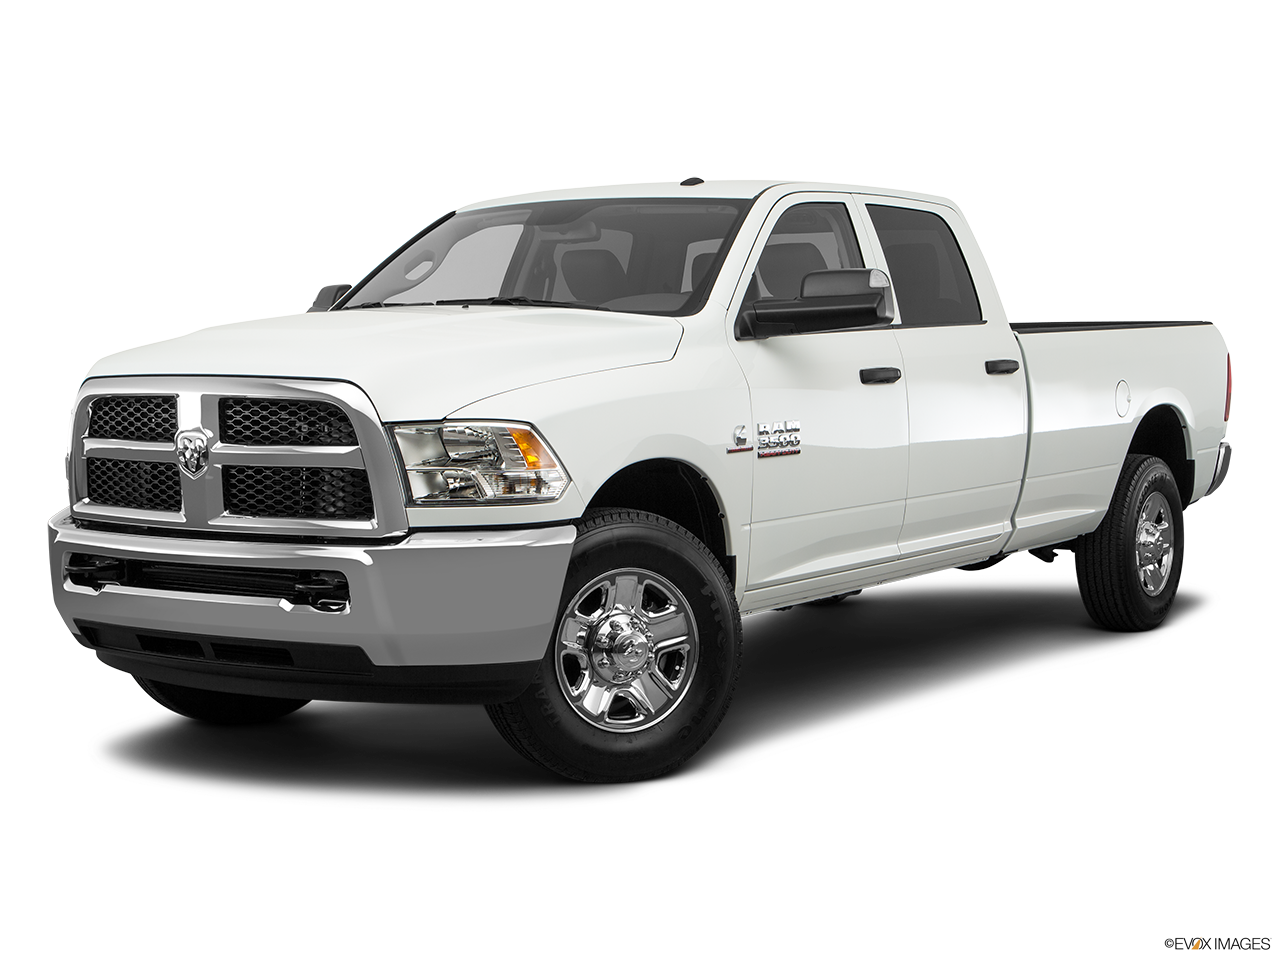 Test Drive A 2016 RAM 3500  at Arrigo Dodge Chrysler Jeep Ram Ft. Pierce in Fort Pierce